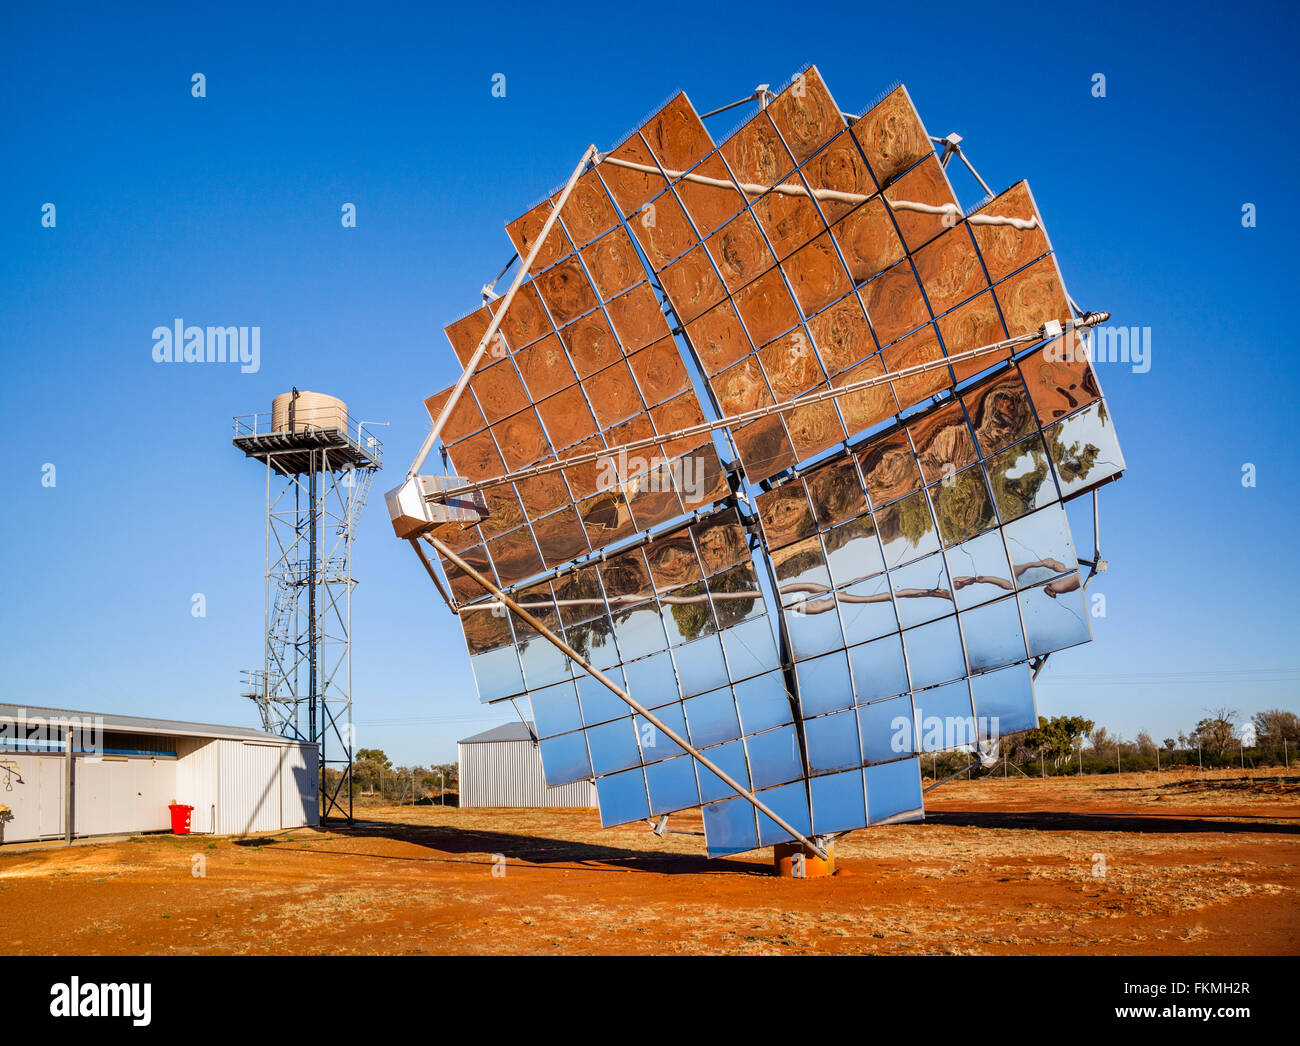 the solar dishes of Windorah Solar Farm, Channel Country, Central West Queensland, Australia - Stock Image